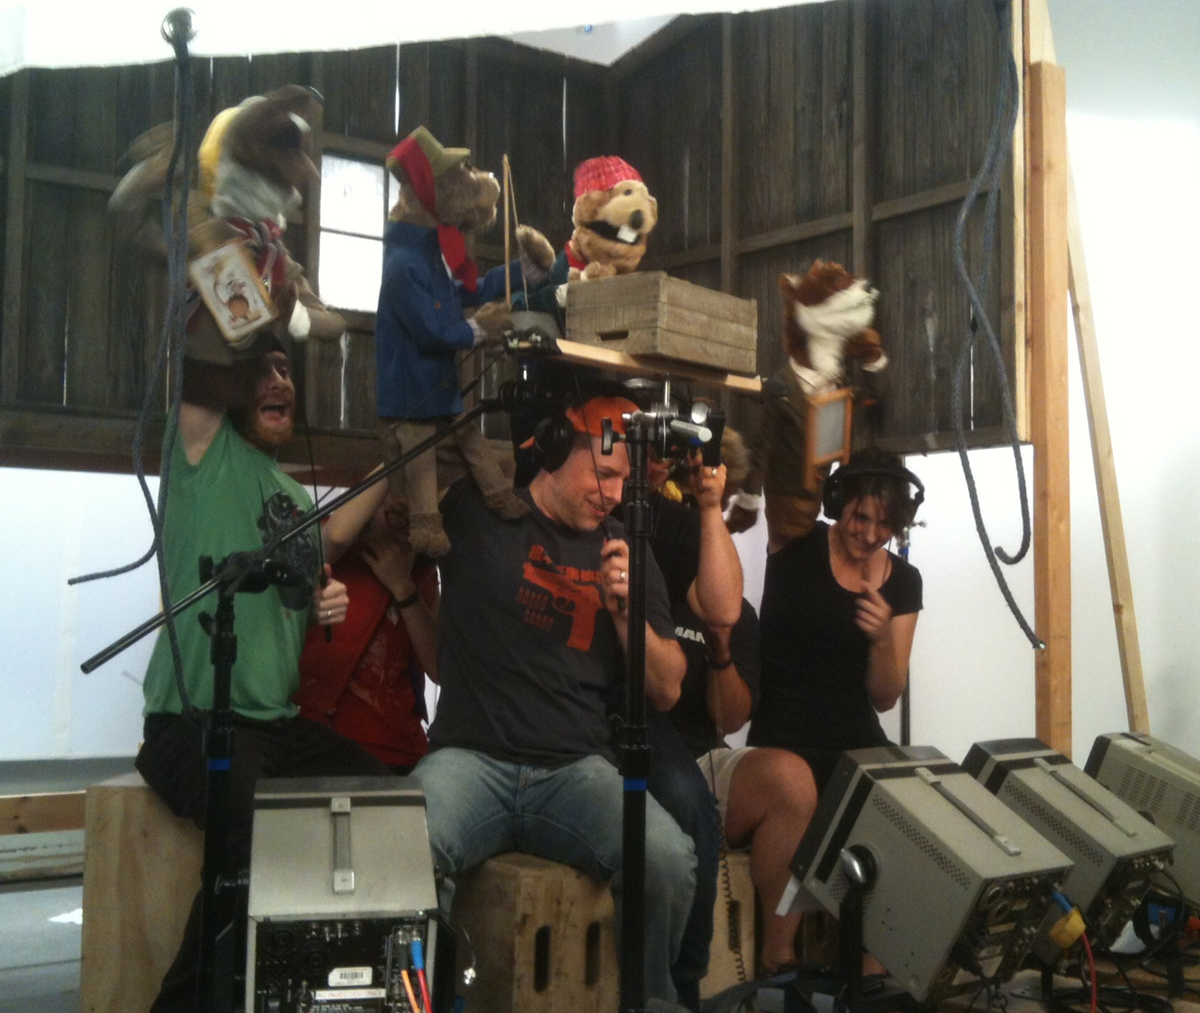 Behind the scenes: puppeteering for the  Robot Chicken  2013 Christmas special.